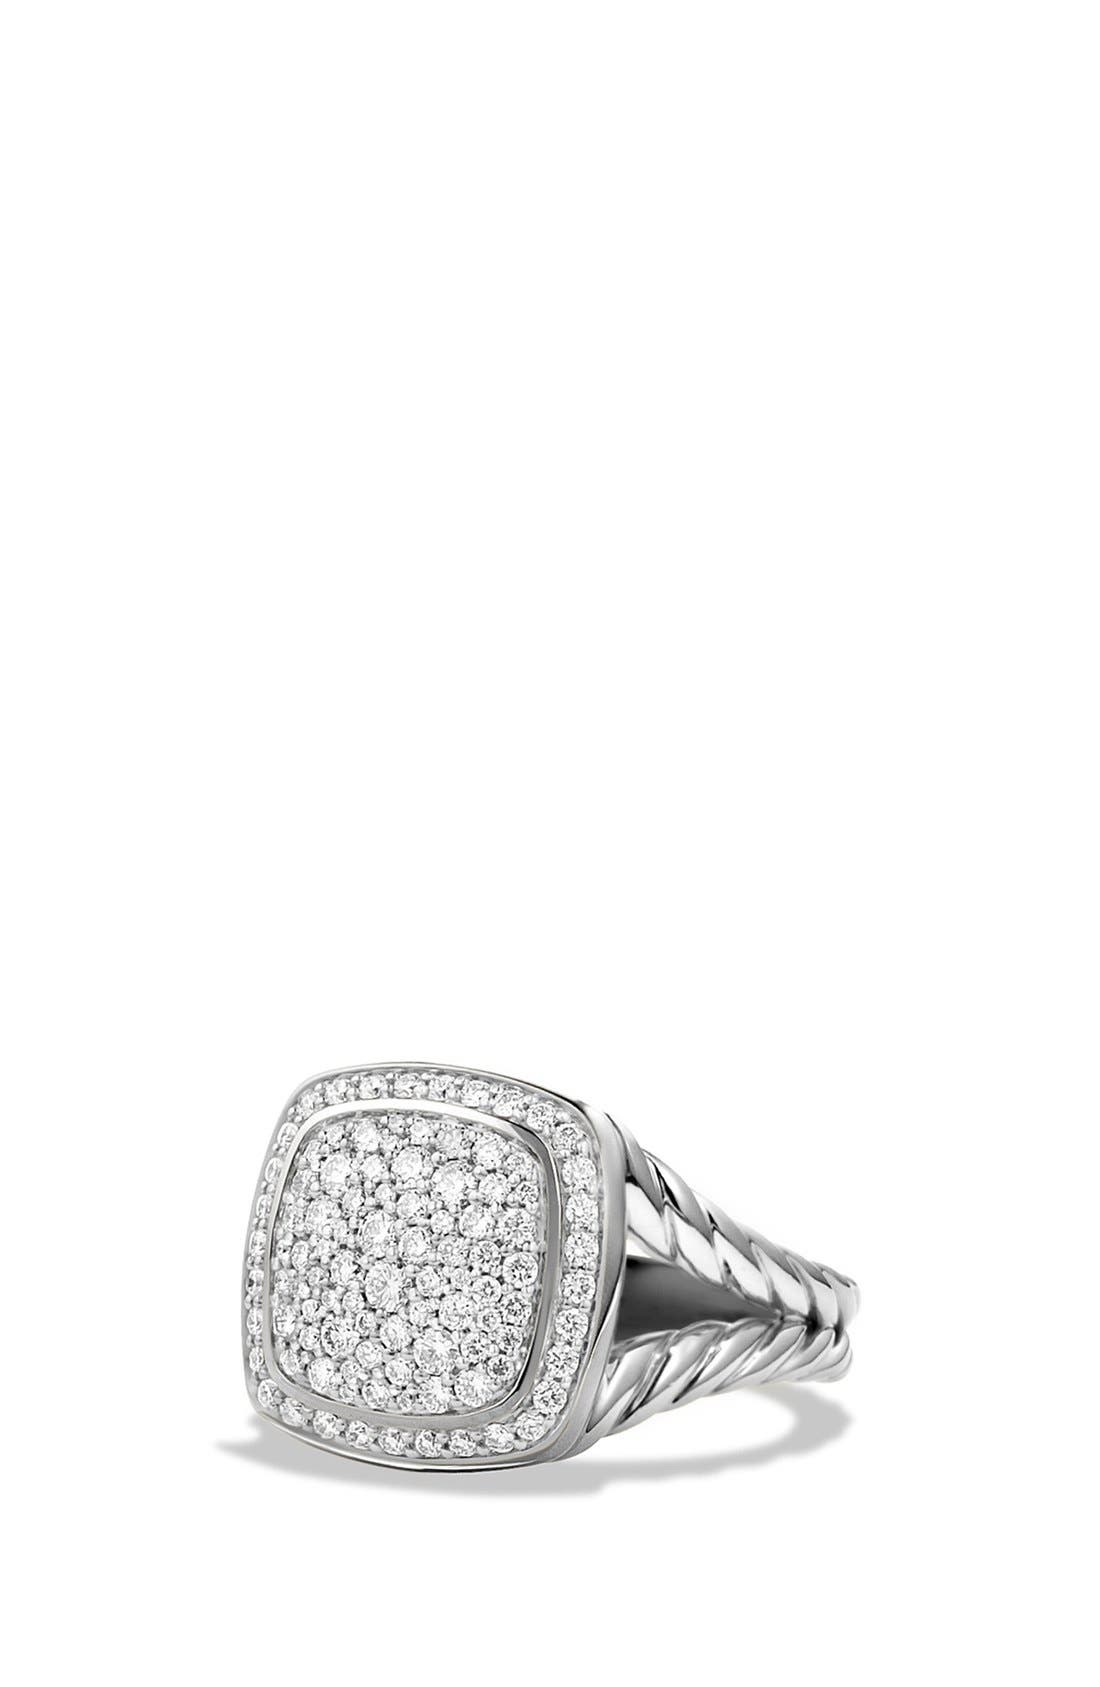 'Albion' Ring with Diamonds,                             Main thumbnail 1, color,                             Diamond